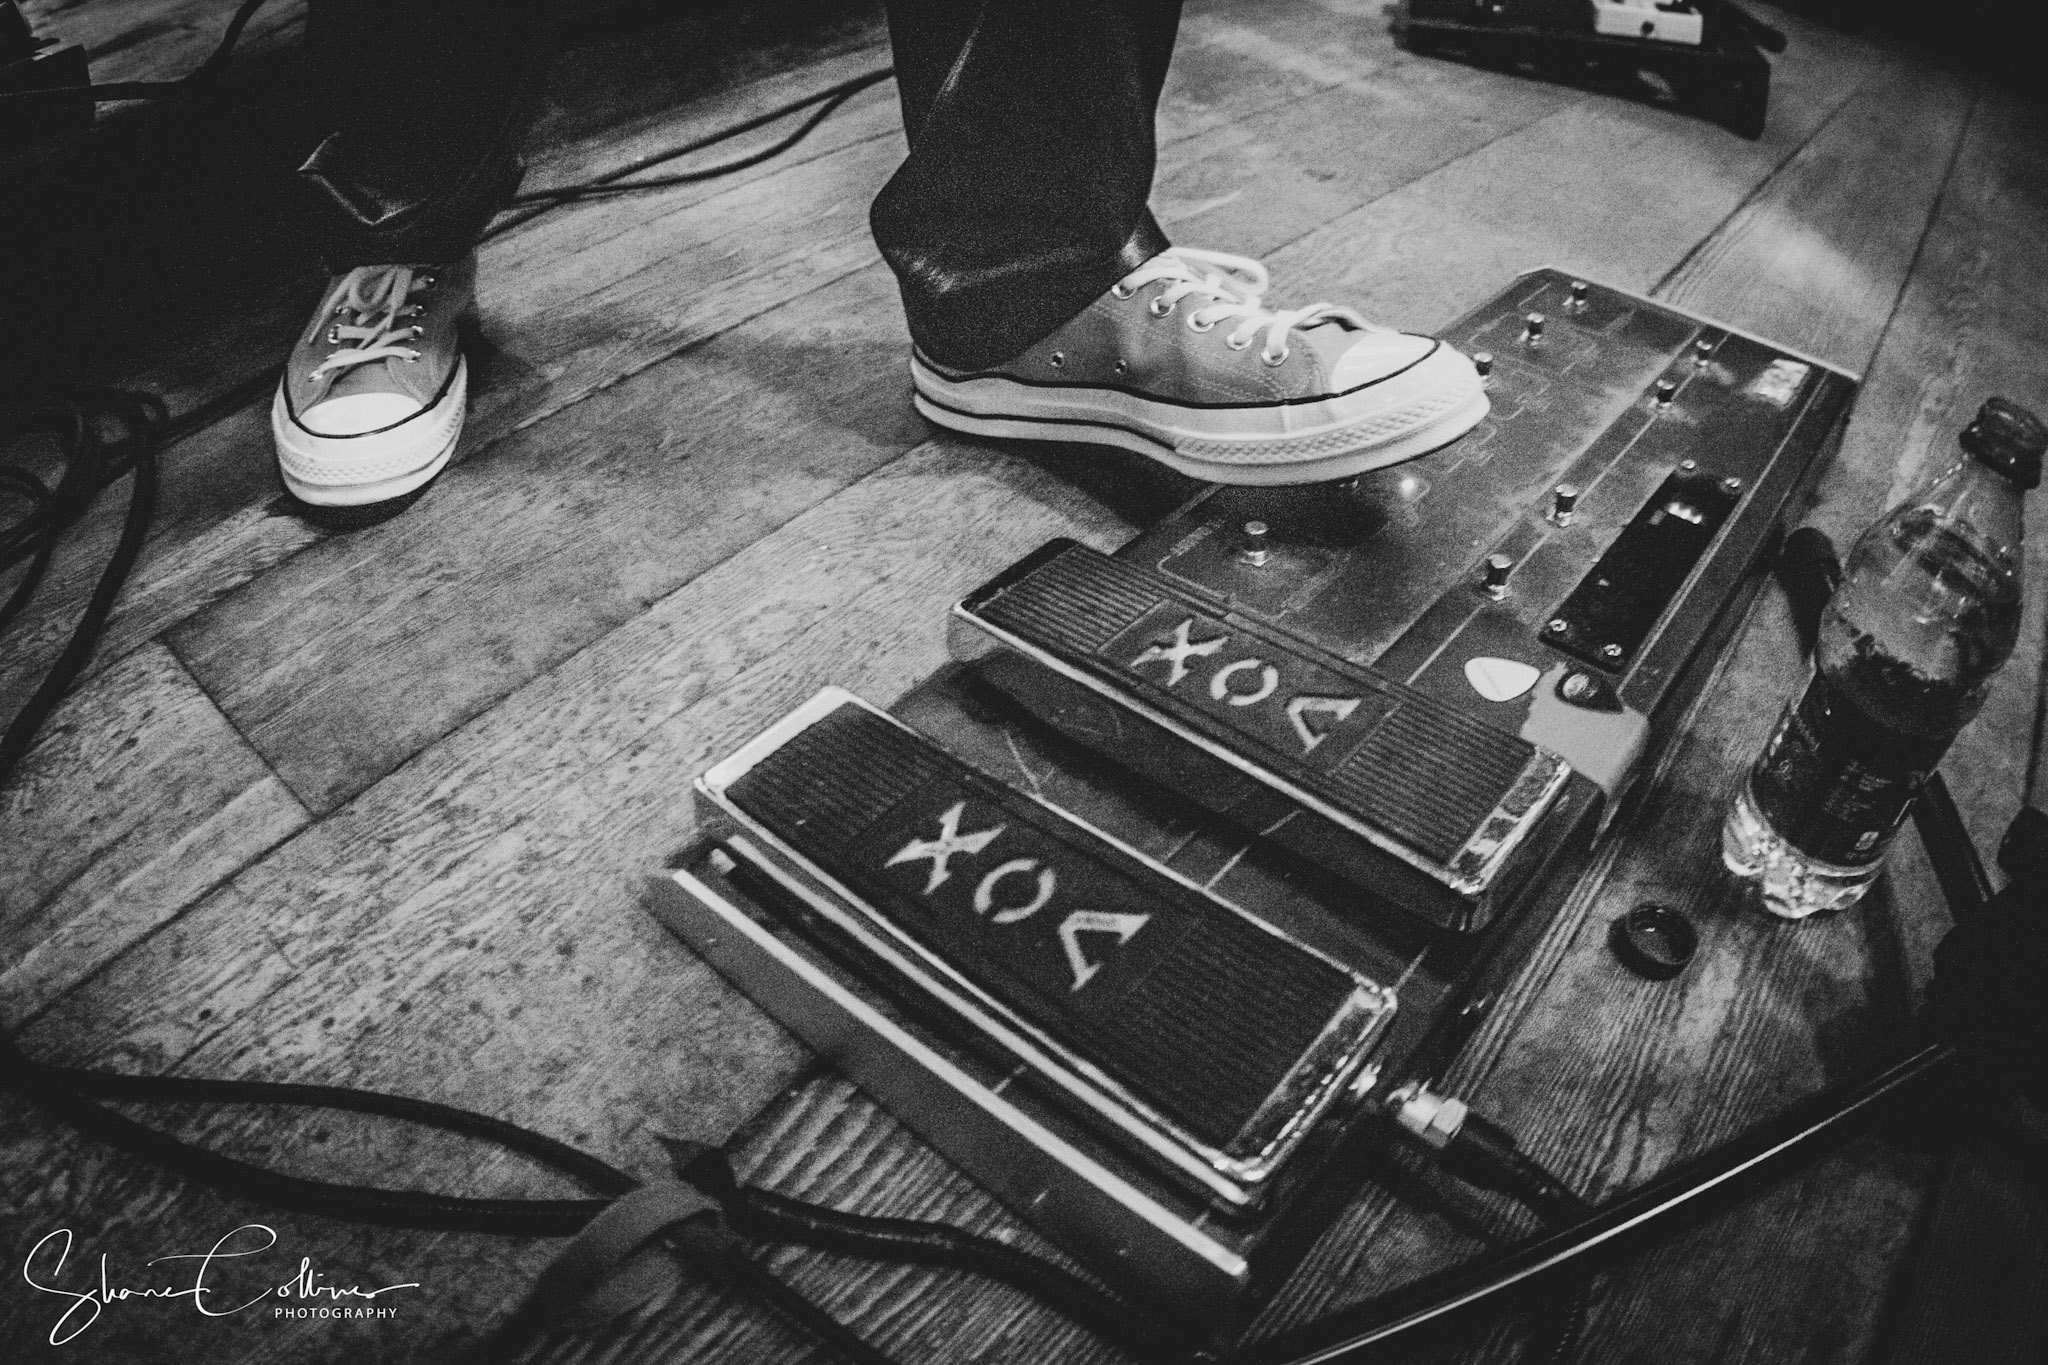 close up of Vox guitar pedals on stage